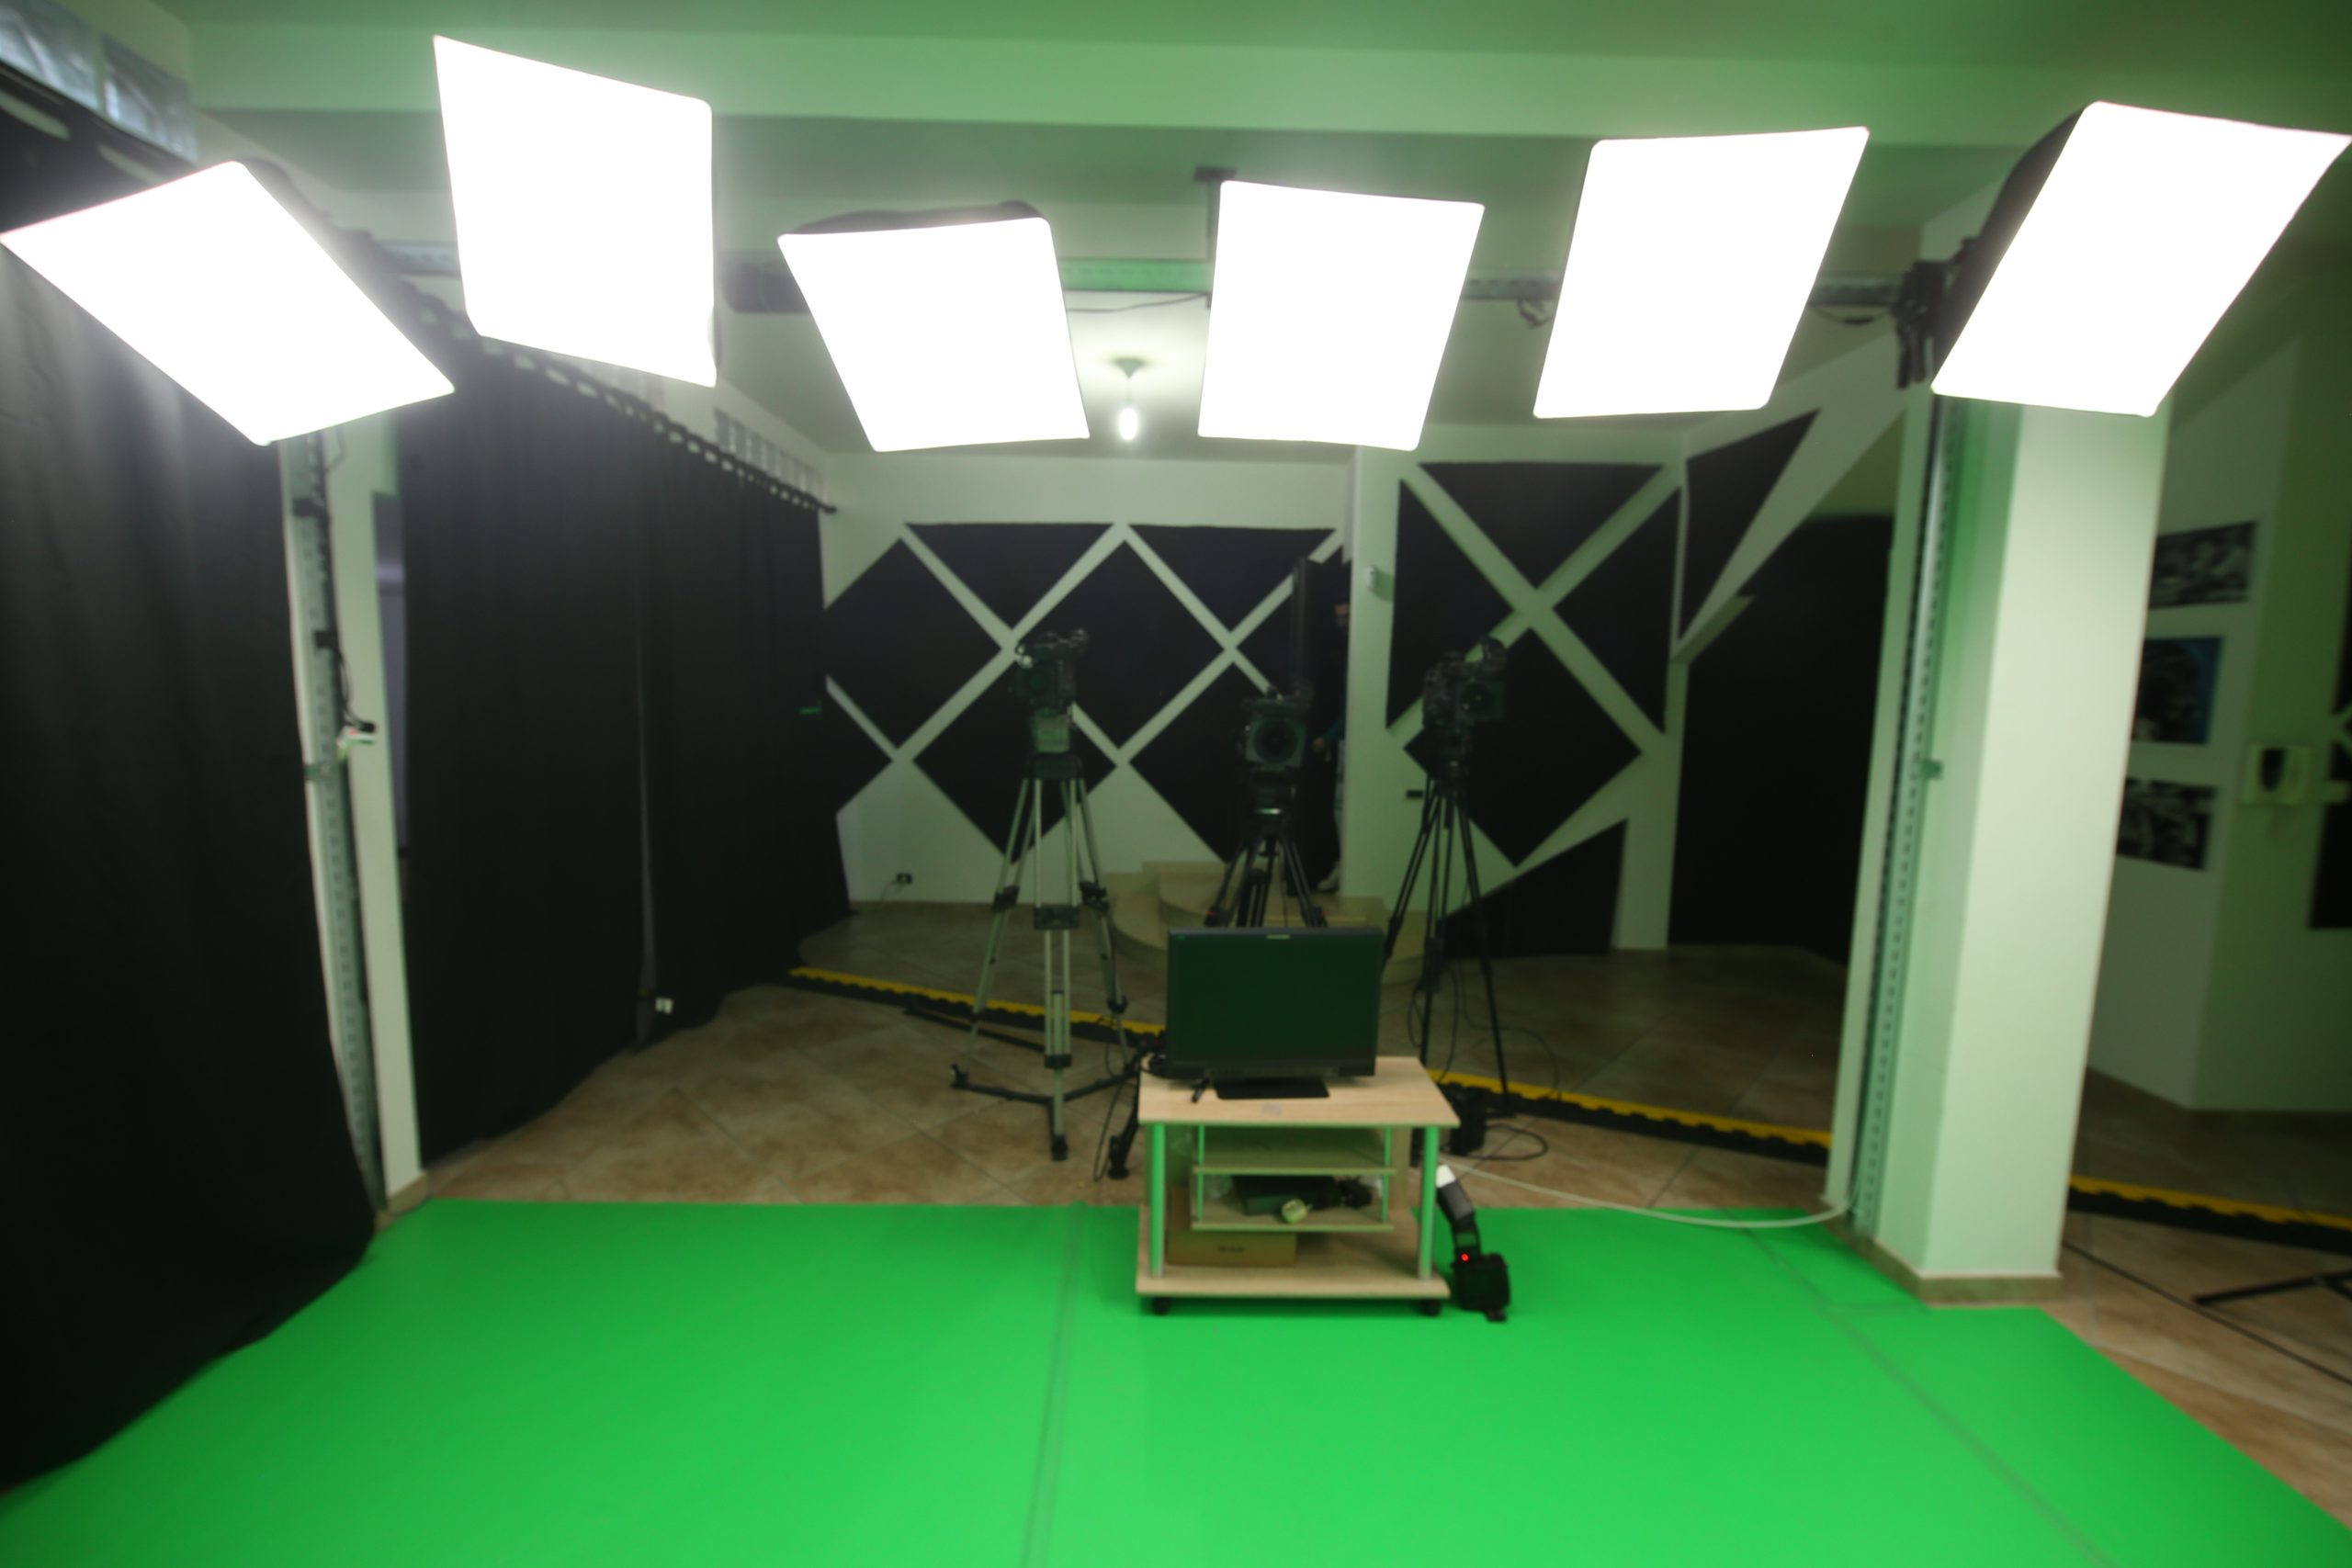 Sala di Posa Green Screen Virtuale a Roma